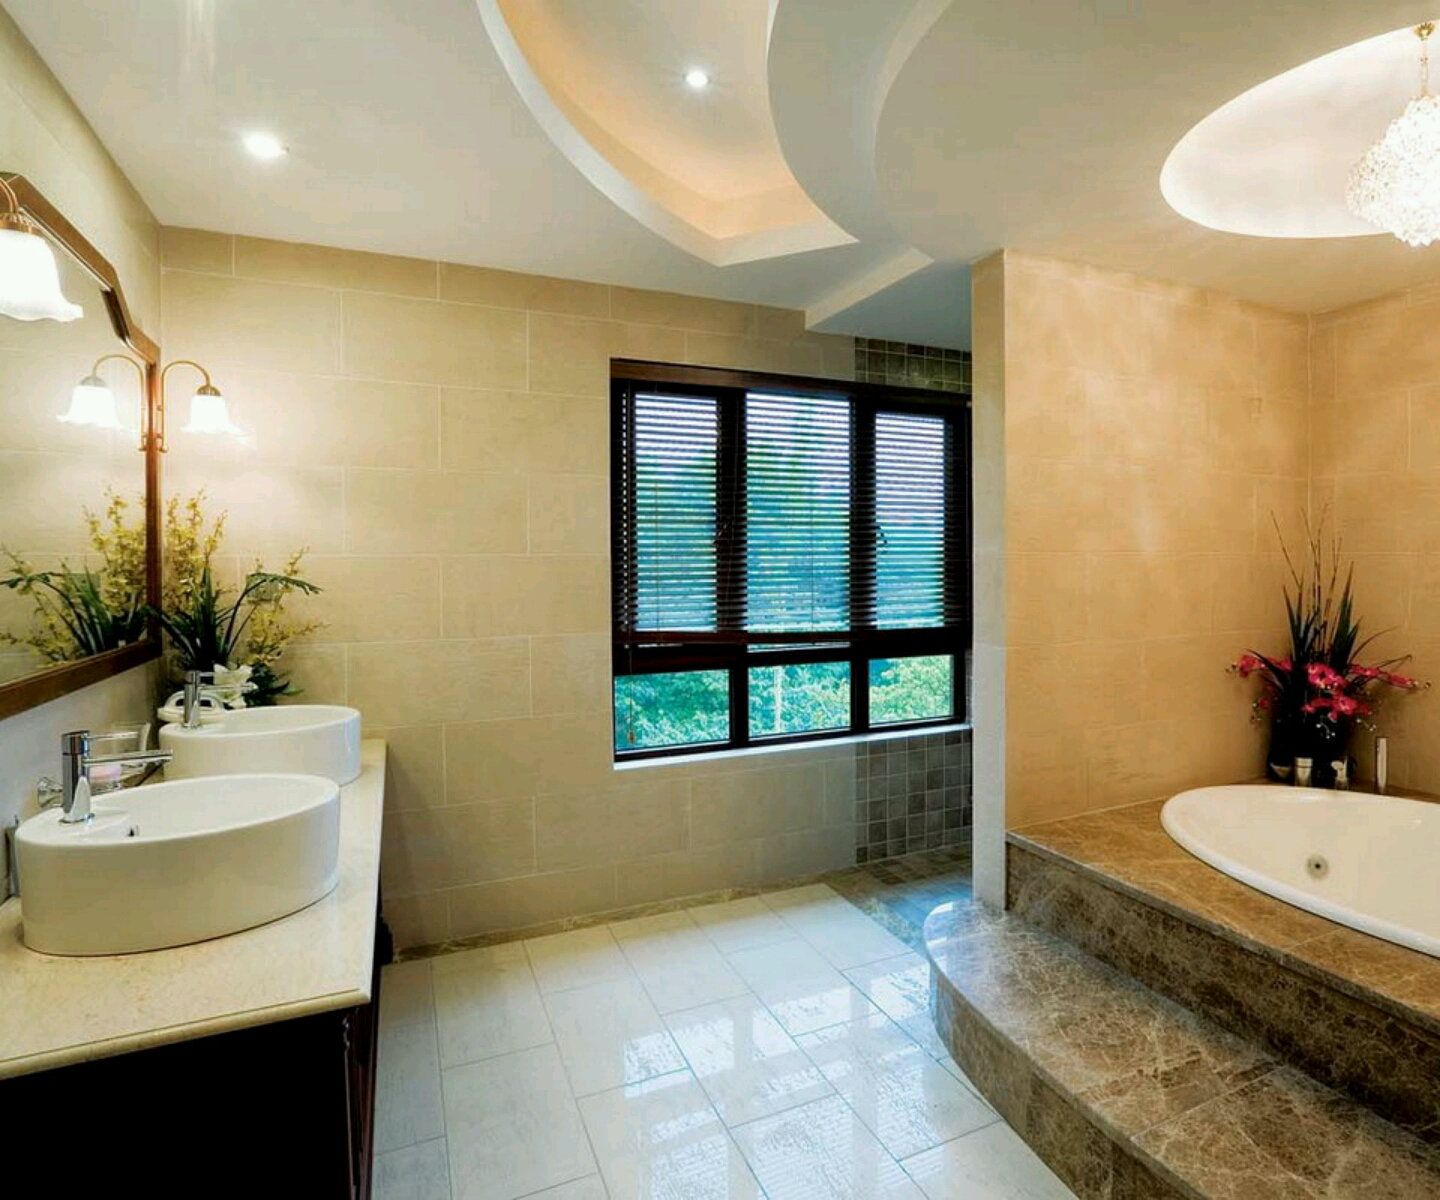 new home designs latest ultra modern washroom designs ideas ForWashroom Design Ideas